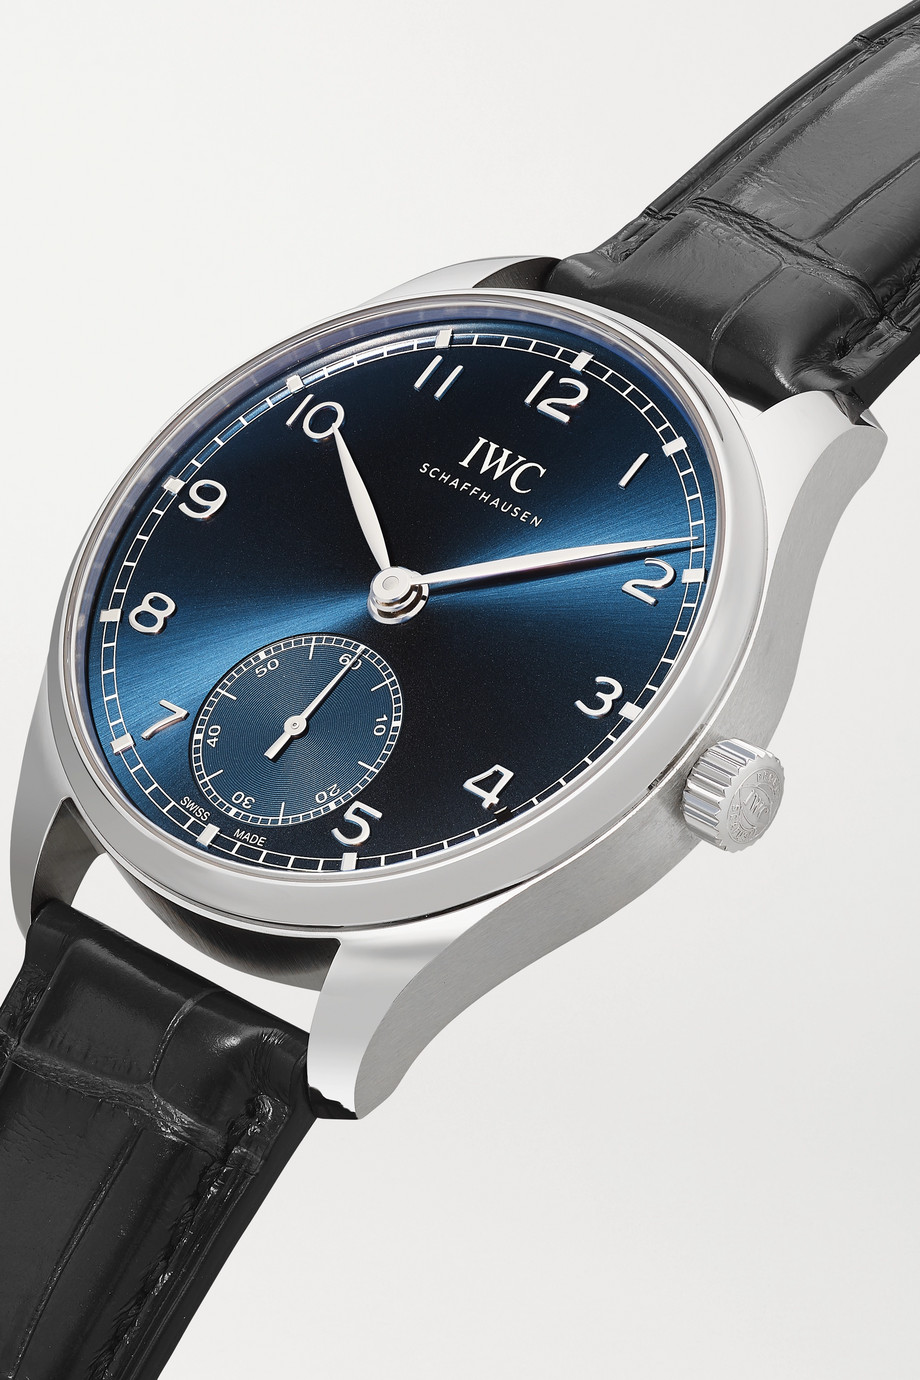 IWC SCHAFFHAUSEN Portugieser Automatic 40.4mm stainless steel and alligator watch